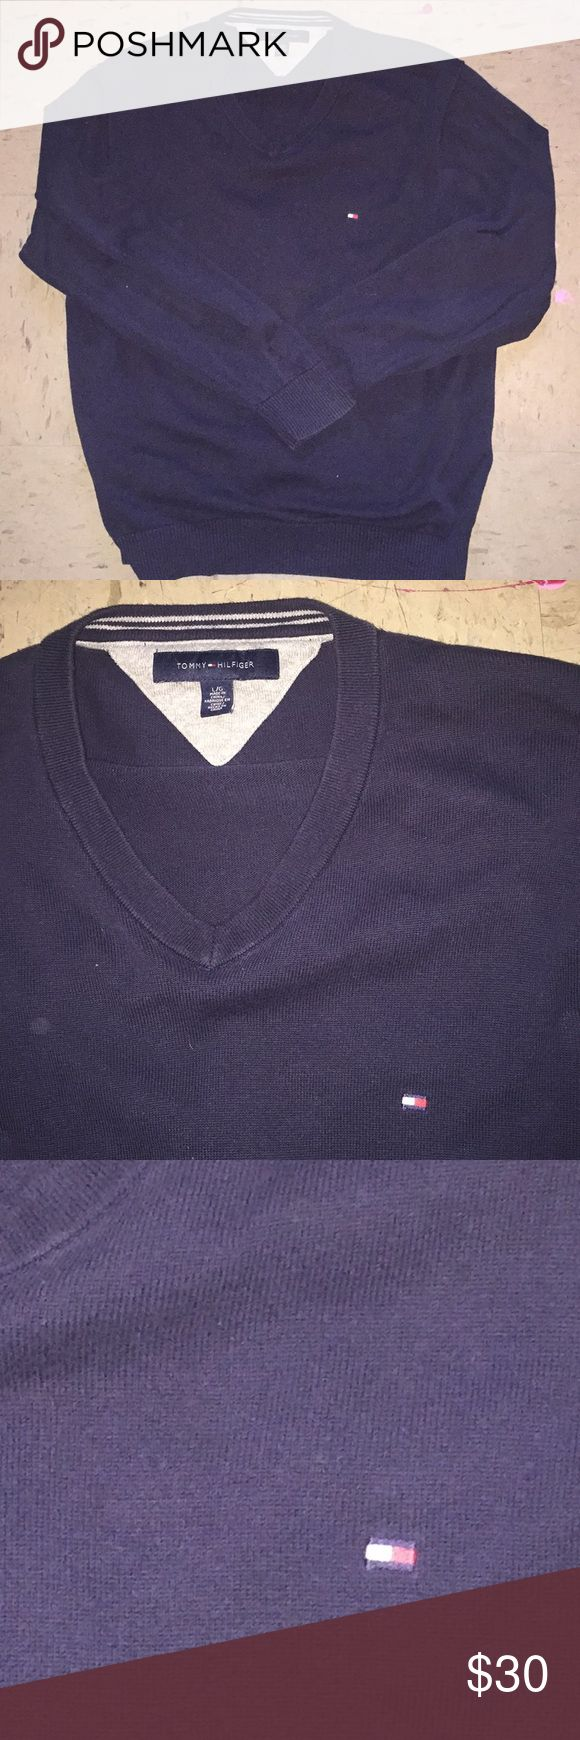 Tommy Hilfiger v-neck sweater a Tommy Hilfiger v-neck sweater in a dark blue. maybe darker than navy blue. small flag logo on the chest and is in a size large. Tommy Hilfiger Sweaters V-Neck